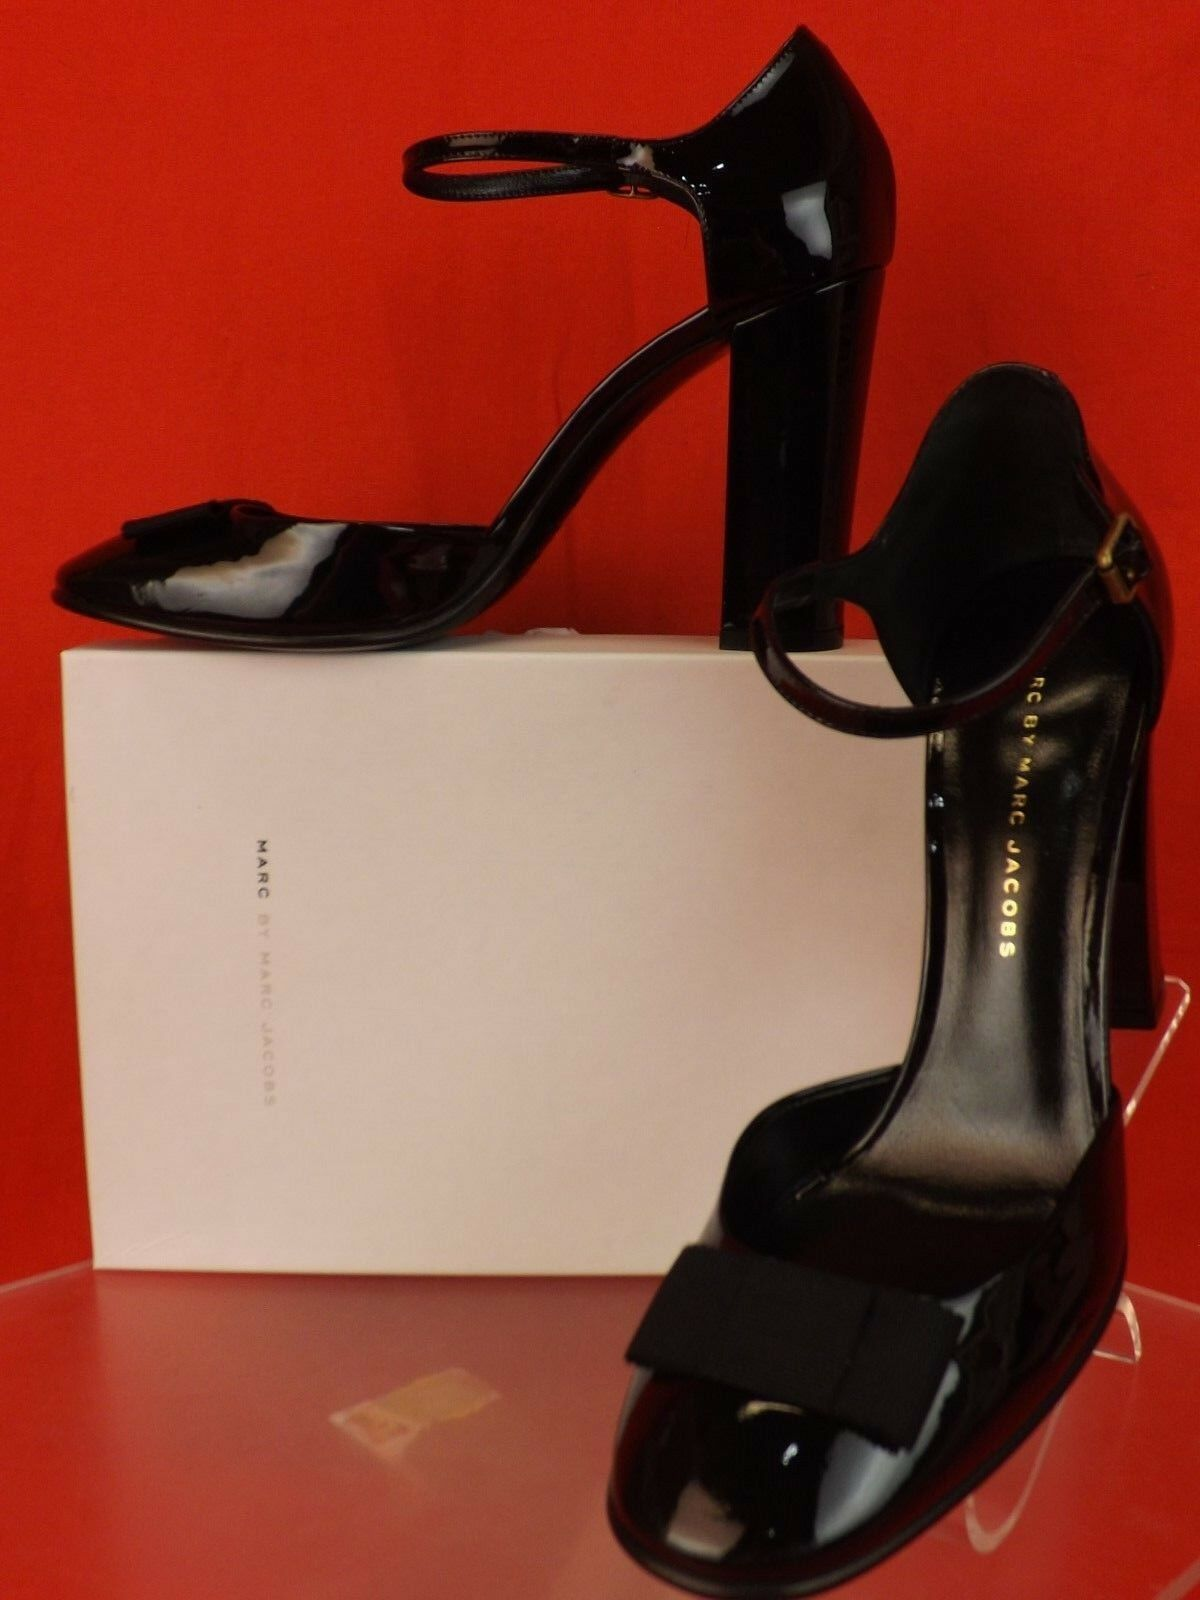 NIB MARC BY MARC JACOBS BLACK PATENT LEATHER BOW MARY JANE PUMPS 36.5 ITALY